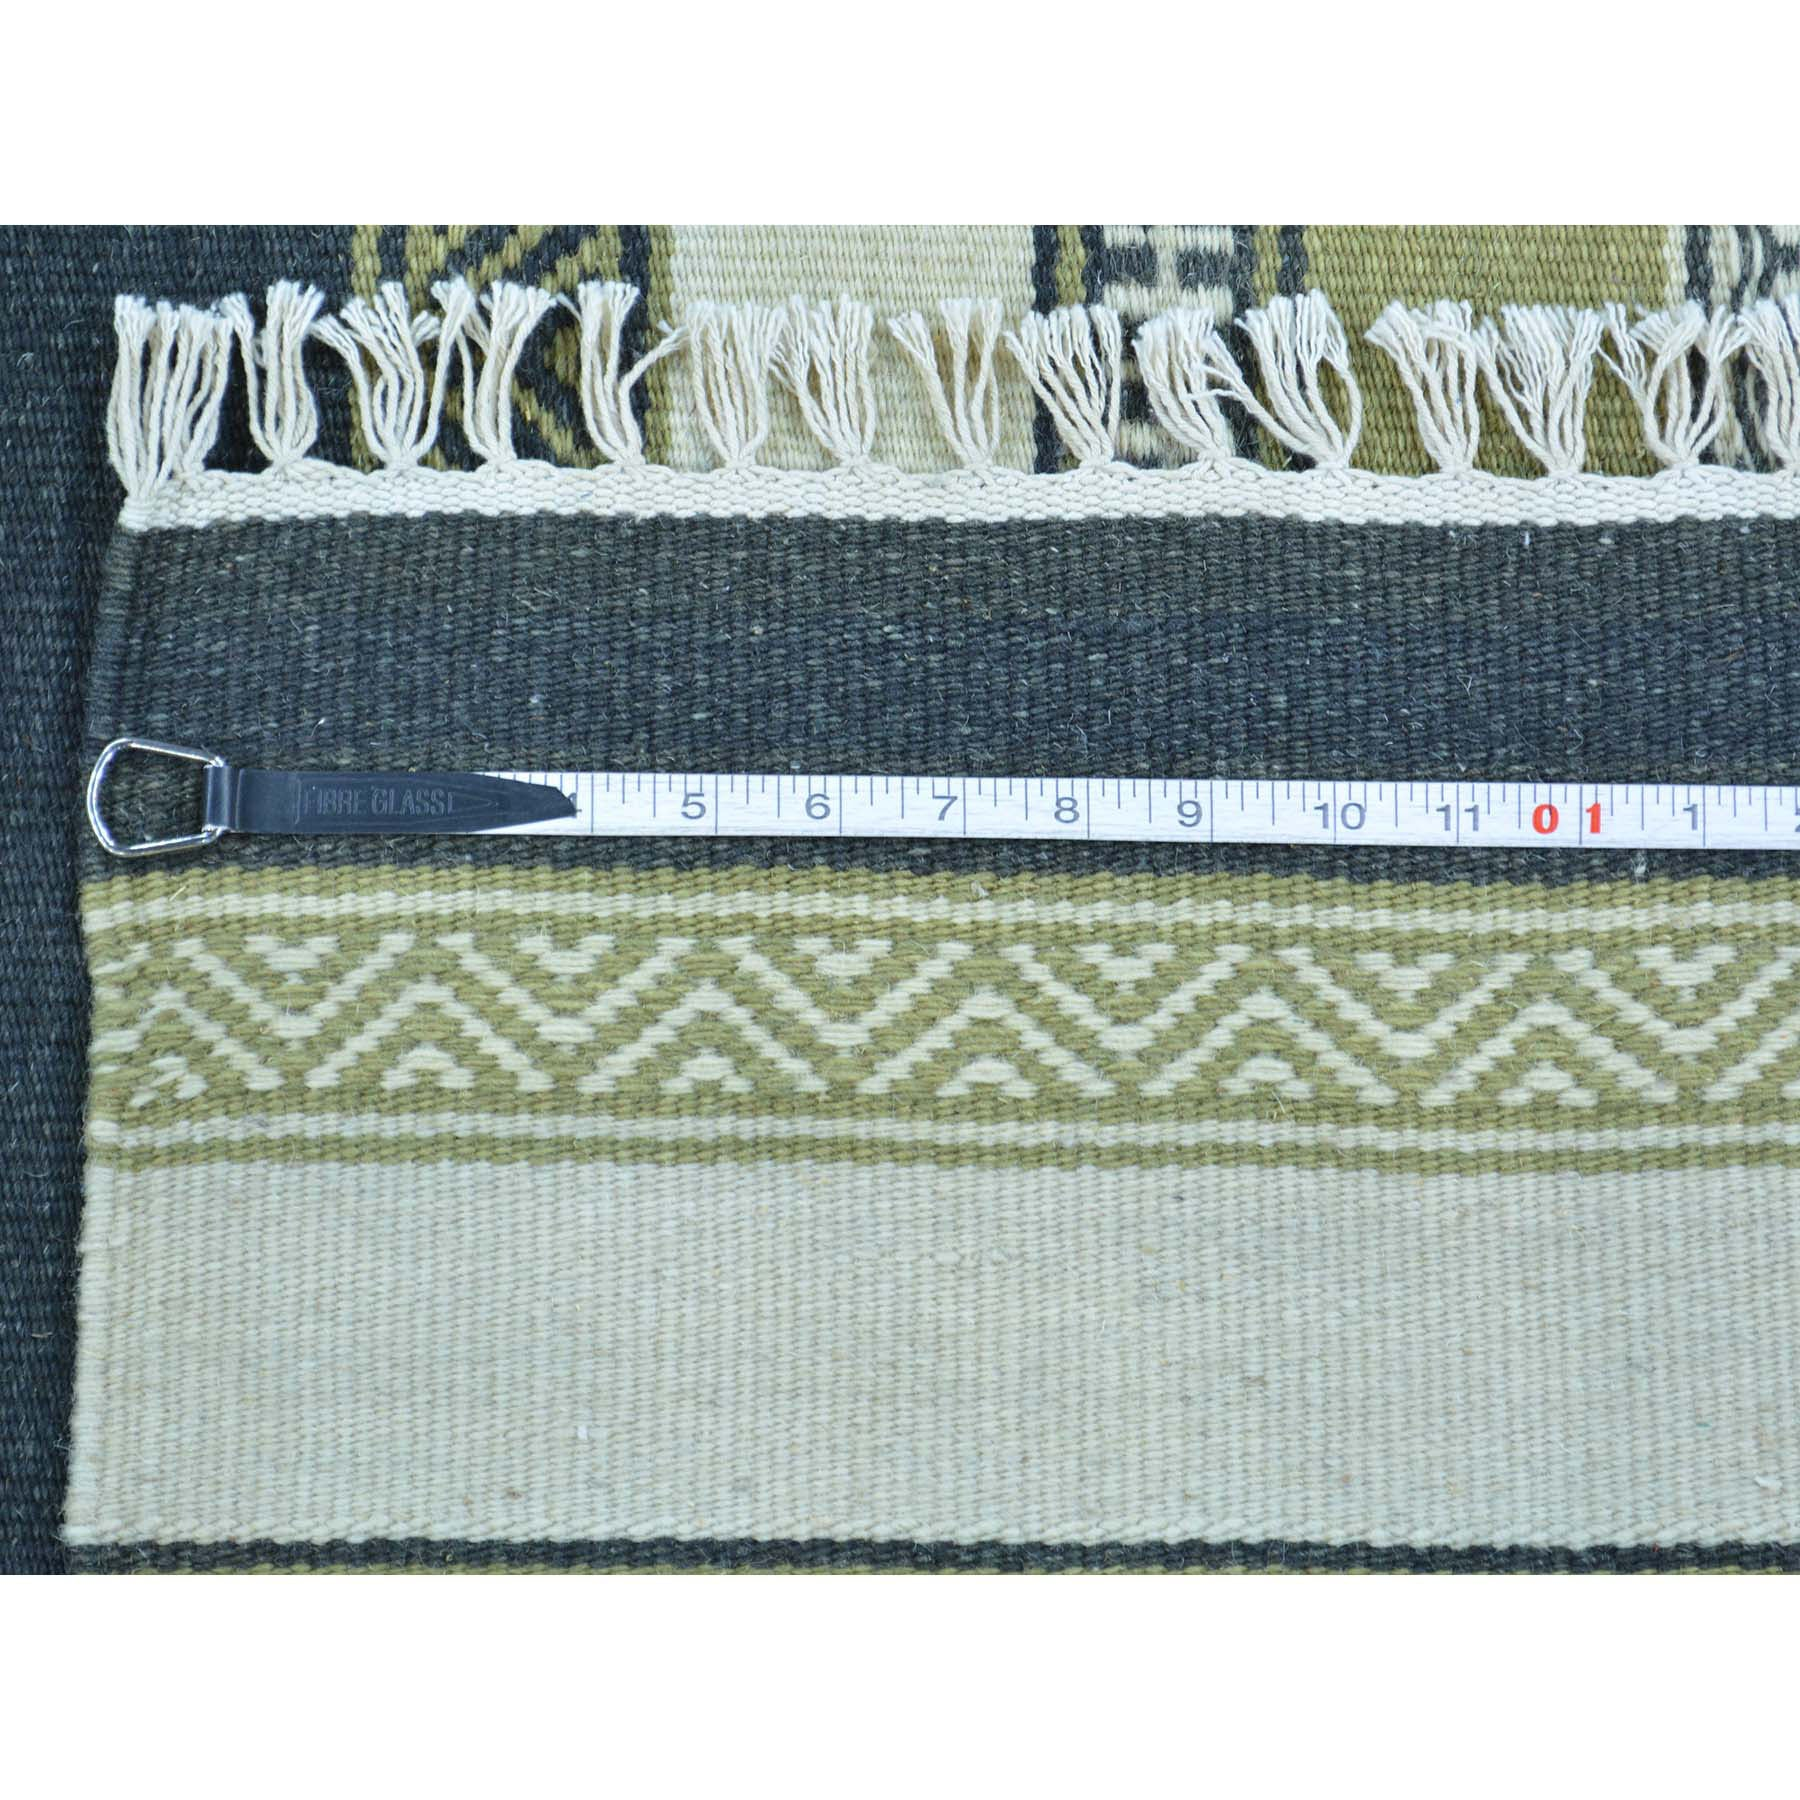 "Handmade Flat Weave Rectangle Rug > Design# SH30120 > Size: 3'-10"" x 6'-1"" [ONLINE ONLY]"